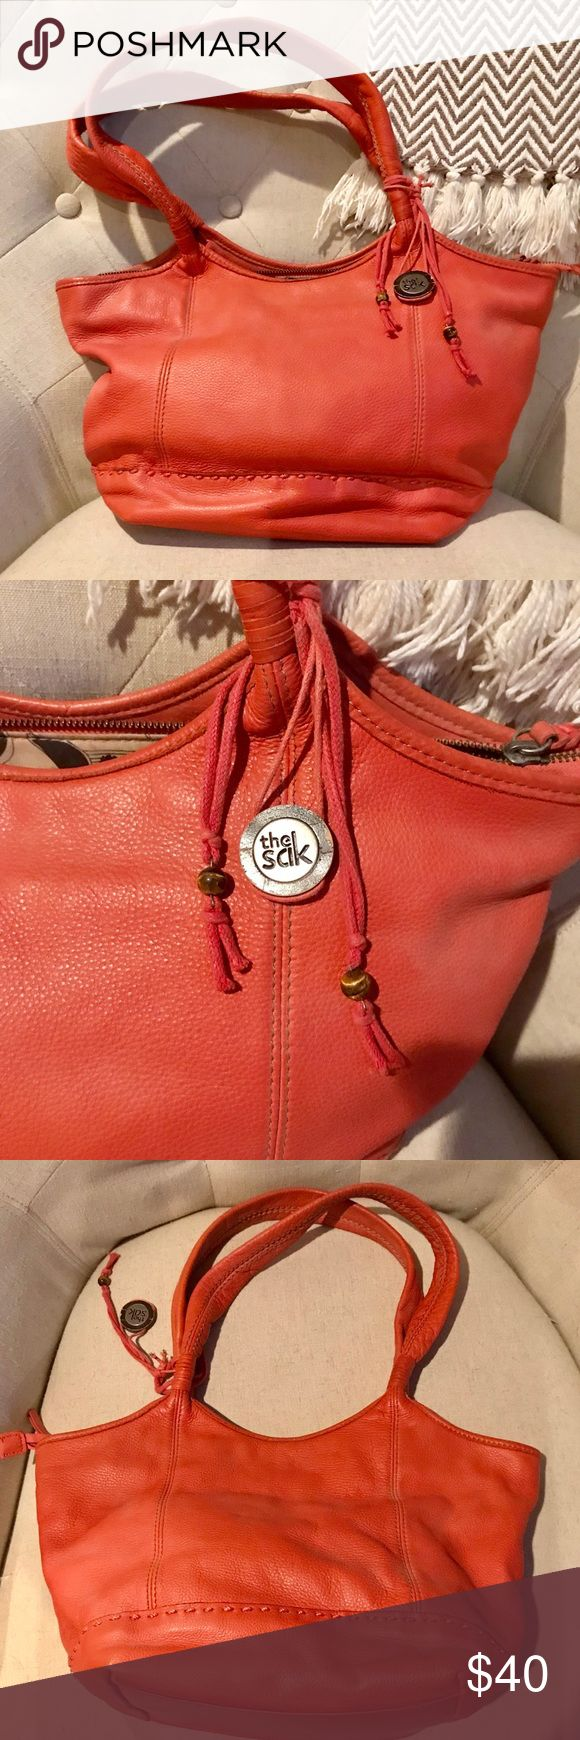 The Sak Shoulder Bag - Make an Offer Burnt Orange Shoulder Bag by The Sak.  In good pre-owned condition.  Handles and body of purse show no signs of wear.  Pictures posted of flaws on bottom of purse. The Sak Bags